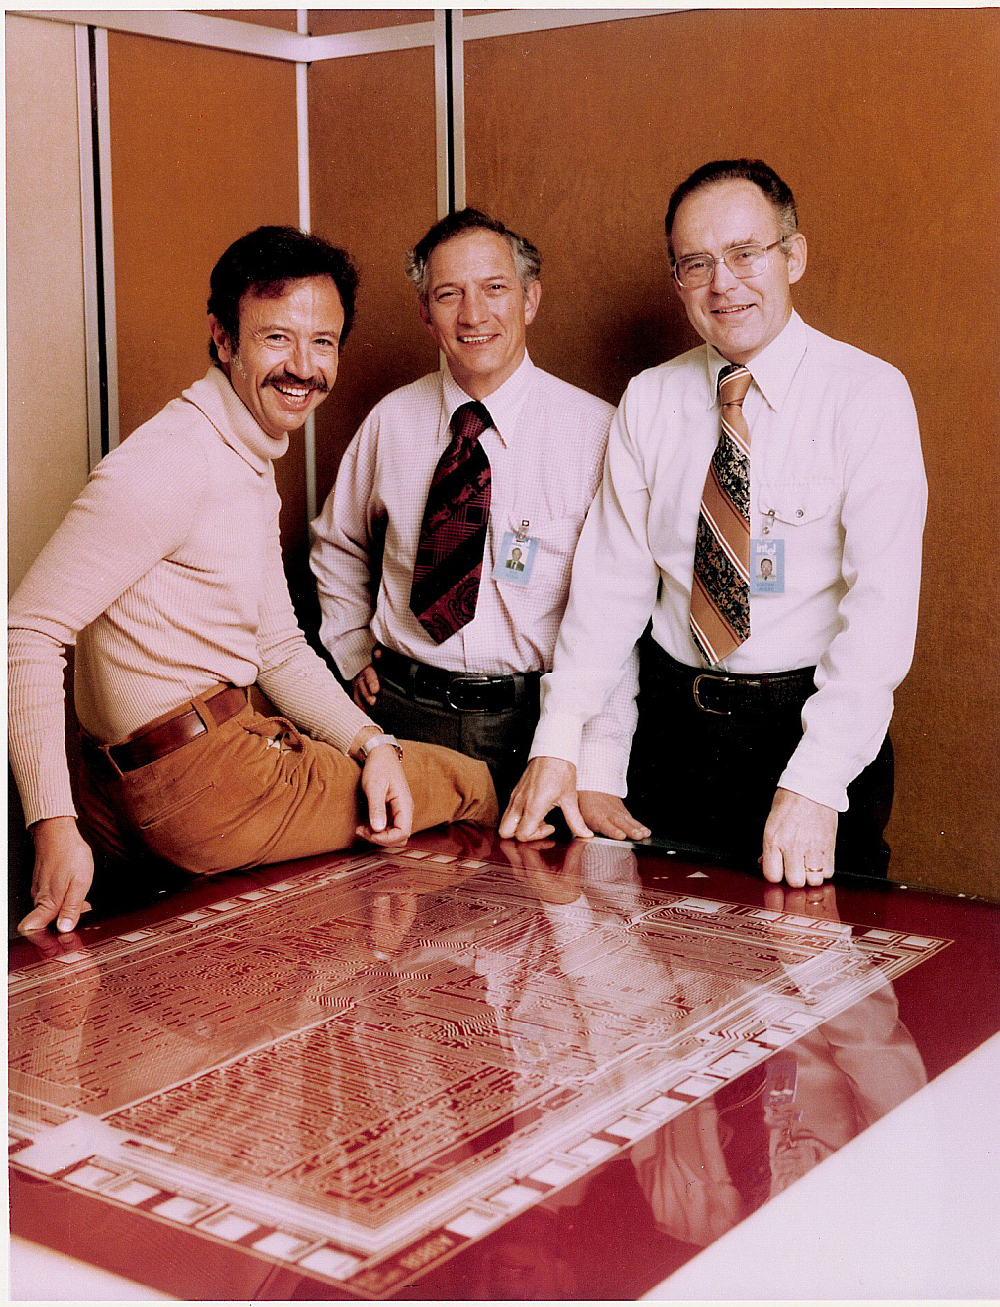 Andy Grove, Robert Noyce y Gordon Moore, fundadores de Intel. Fuente: Wikipedia